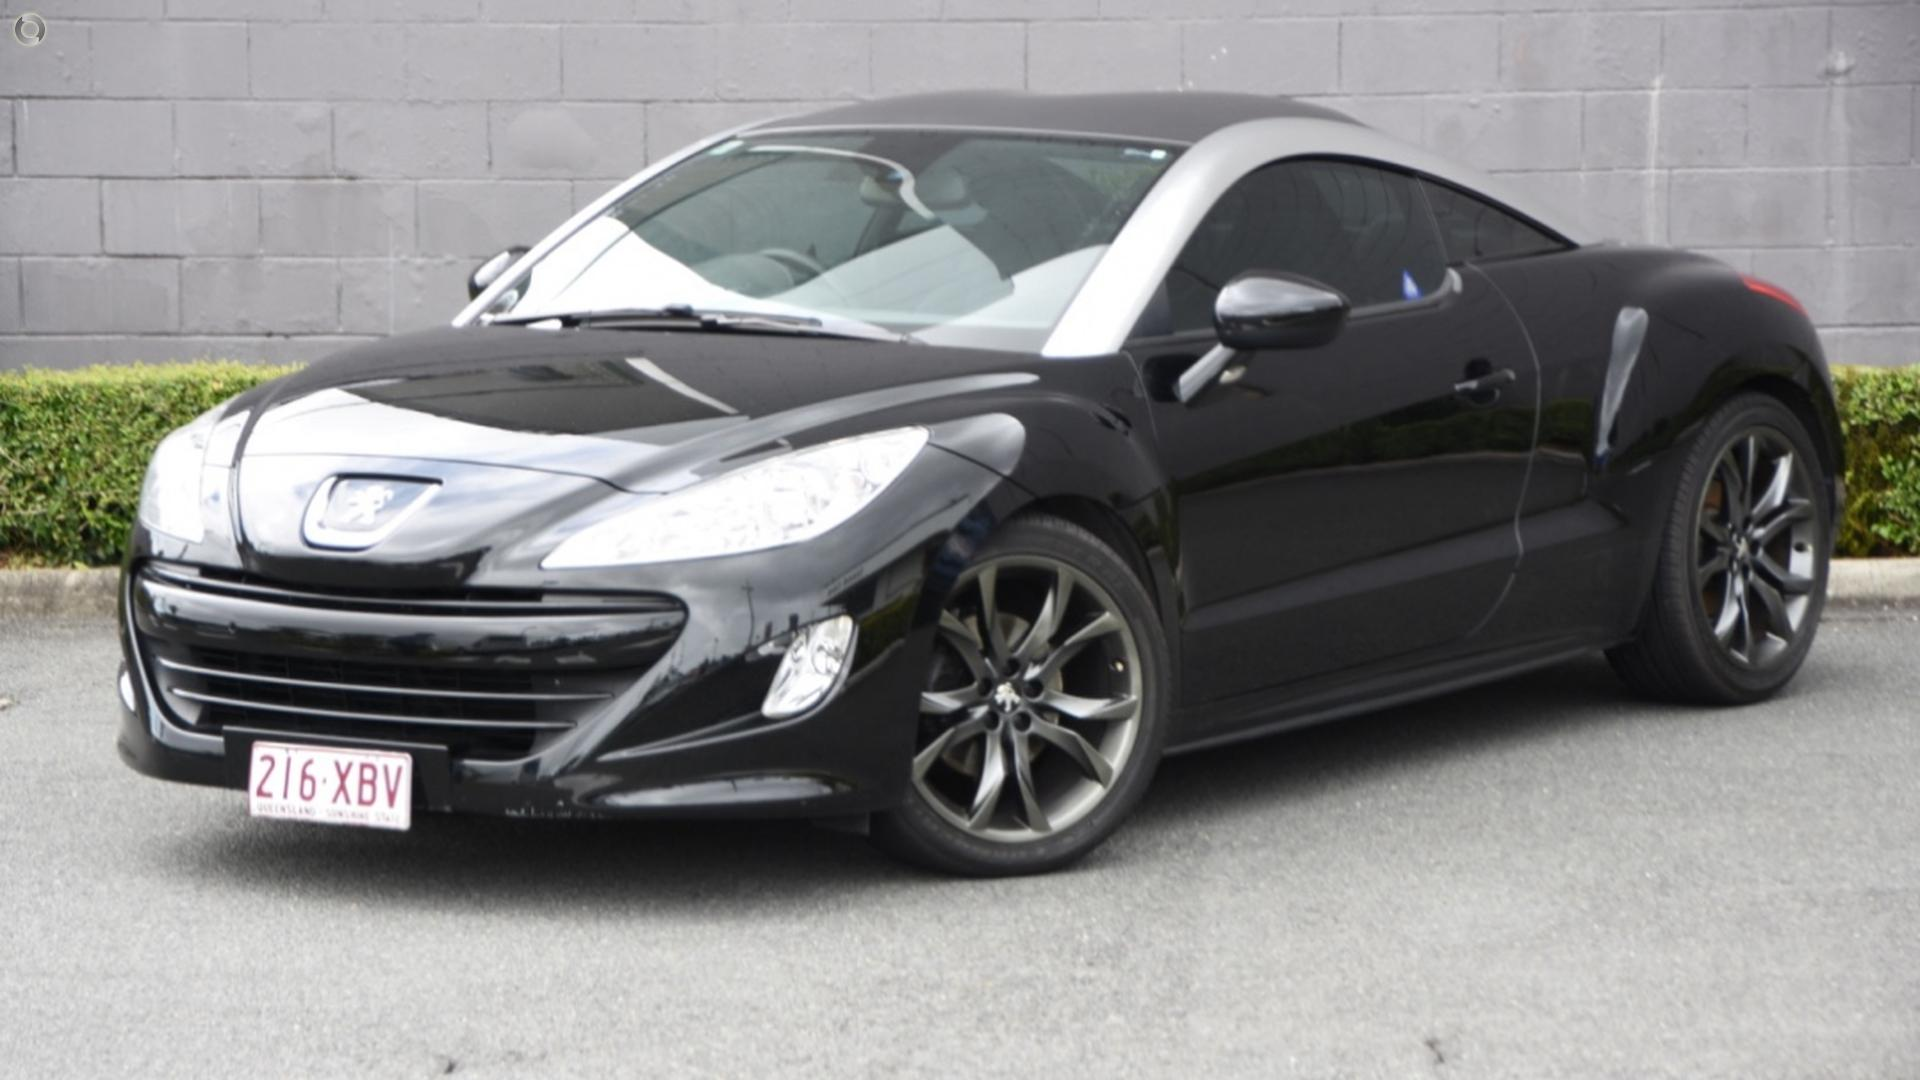 2010 Peugeot Rcz  (No Series)